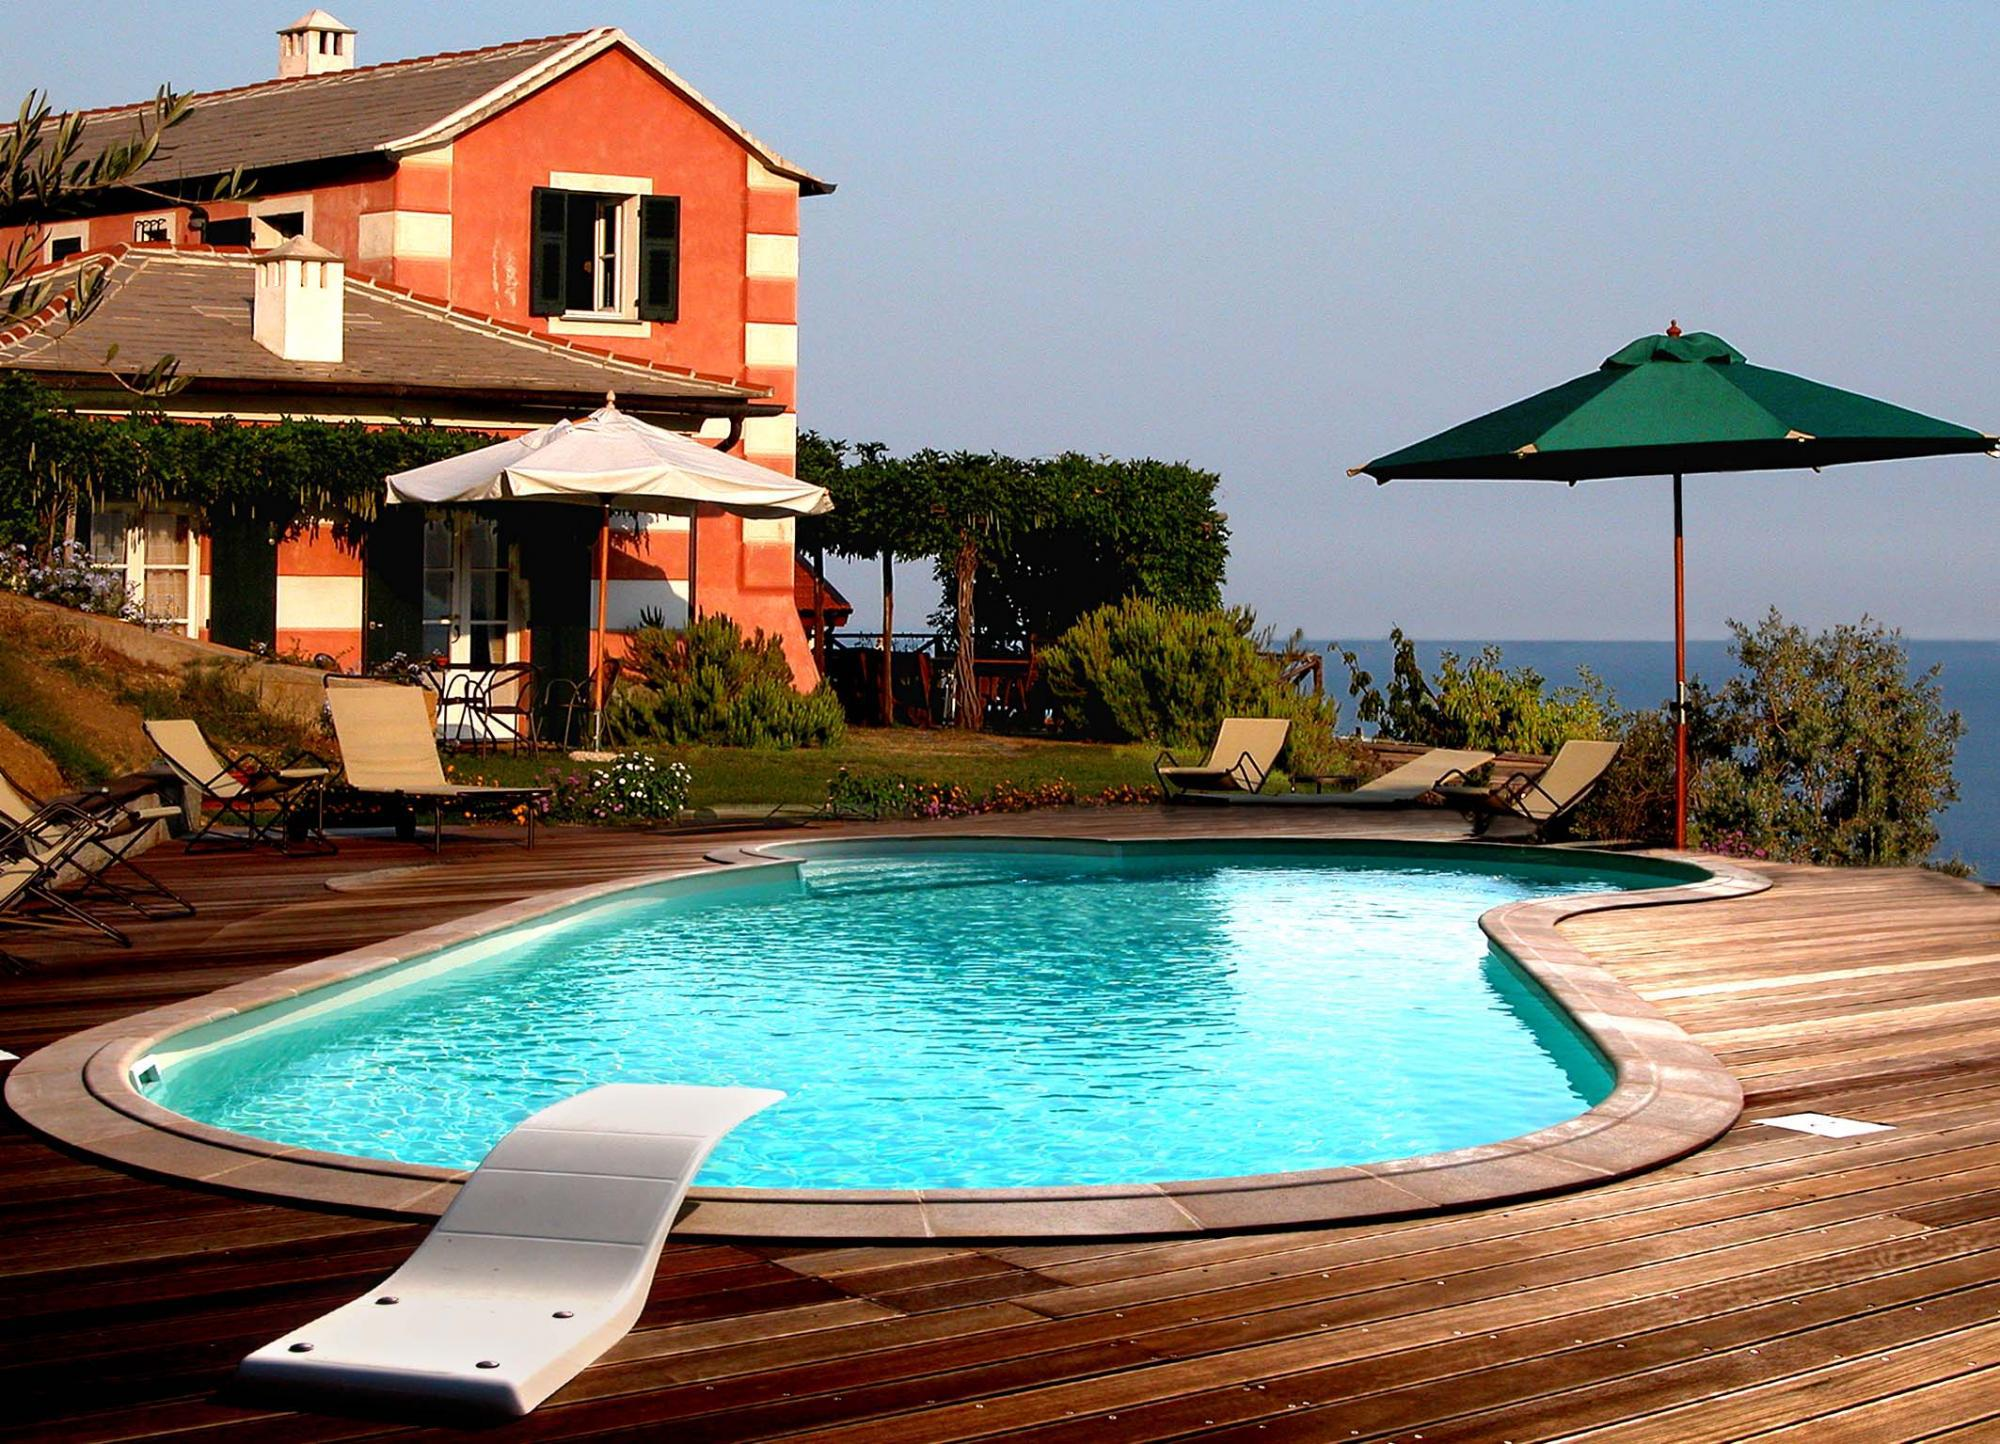 World___Italy_Hotel_on_the_seashore_in_Celle_Ligure__Italy_063723_